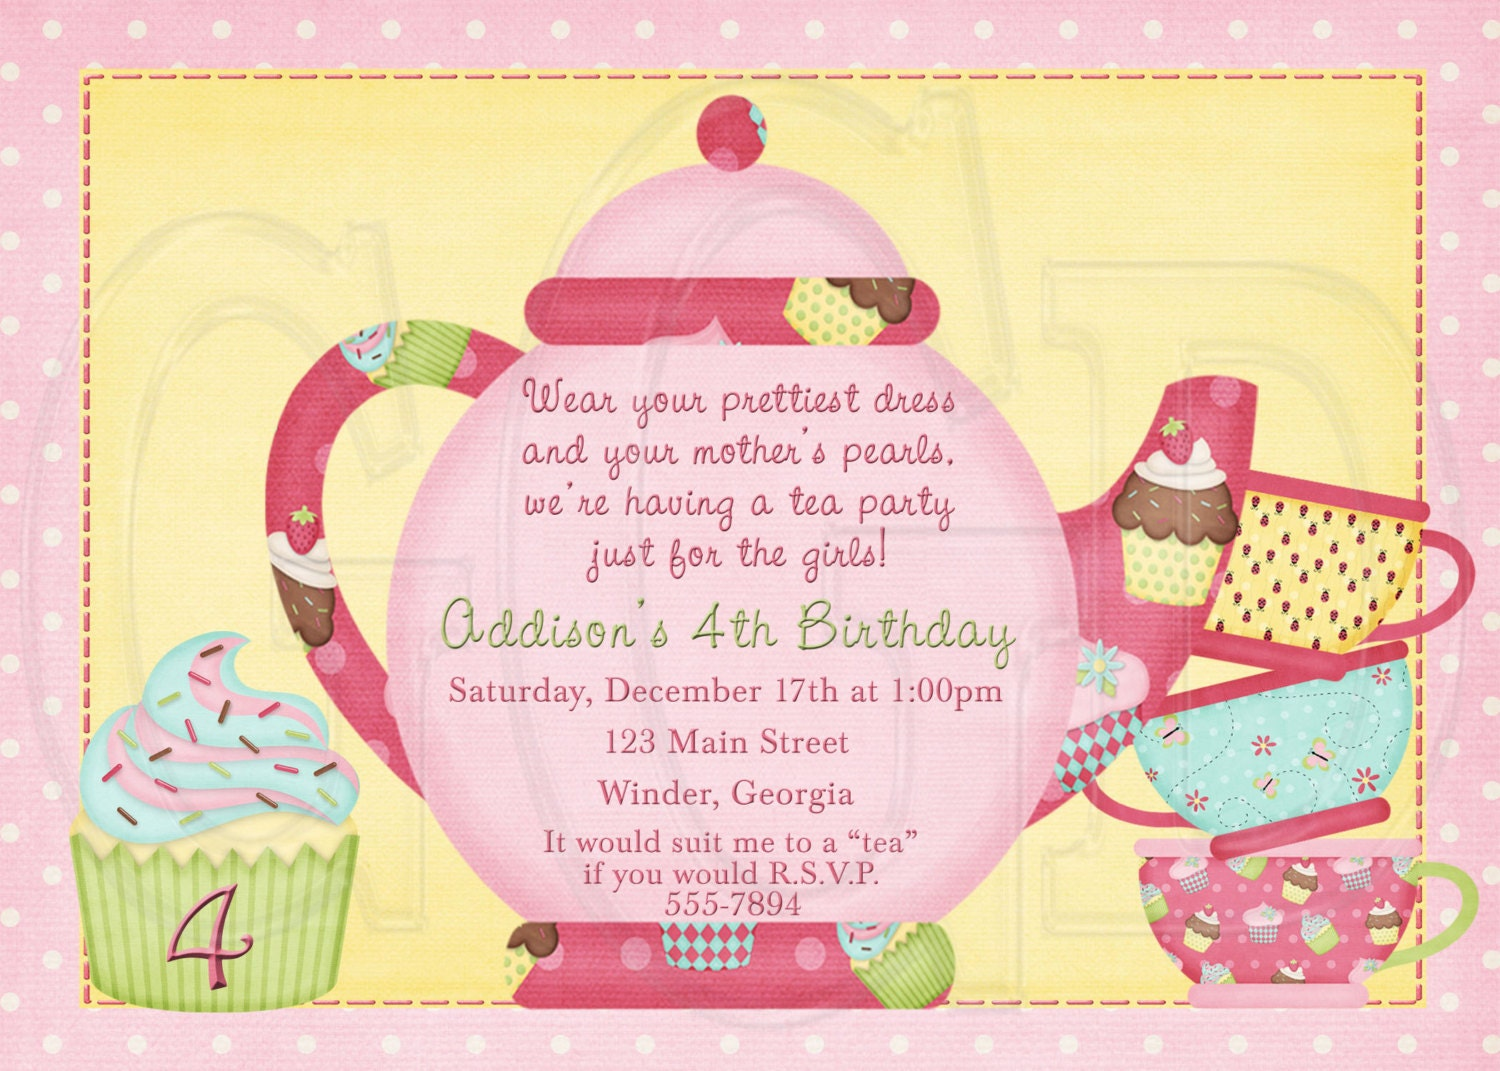 Tea party invitation birthday dress up party digital file zoom stopboris Image collections